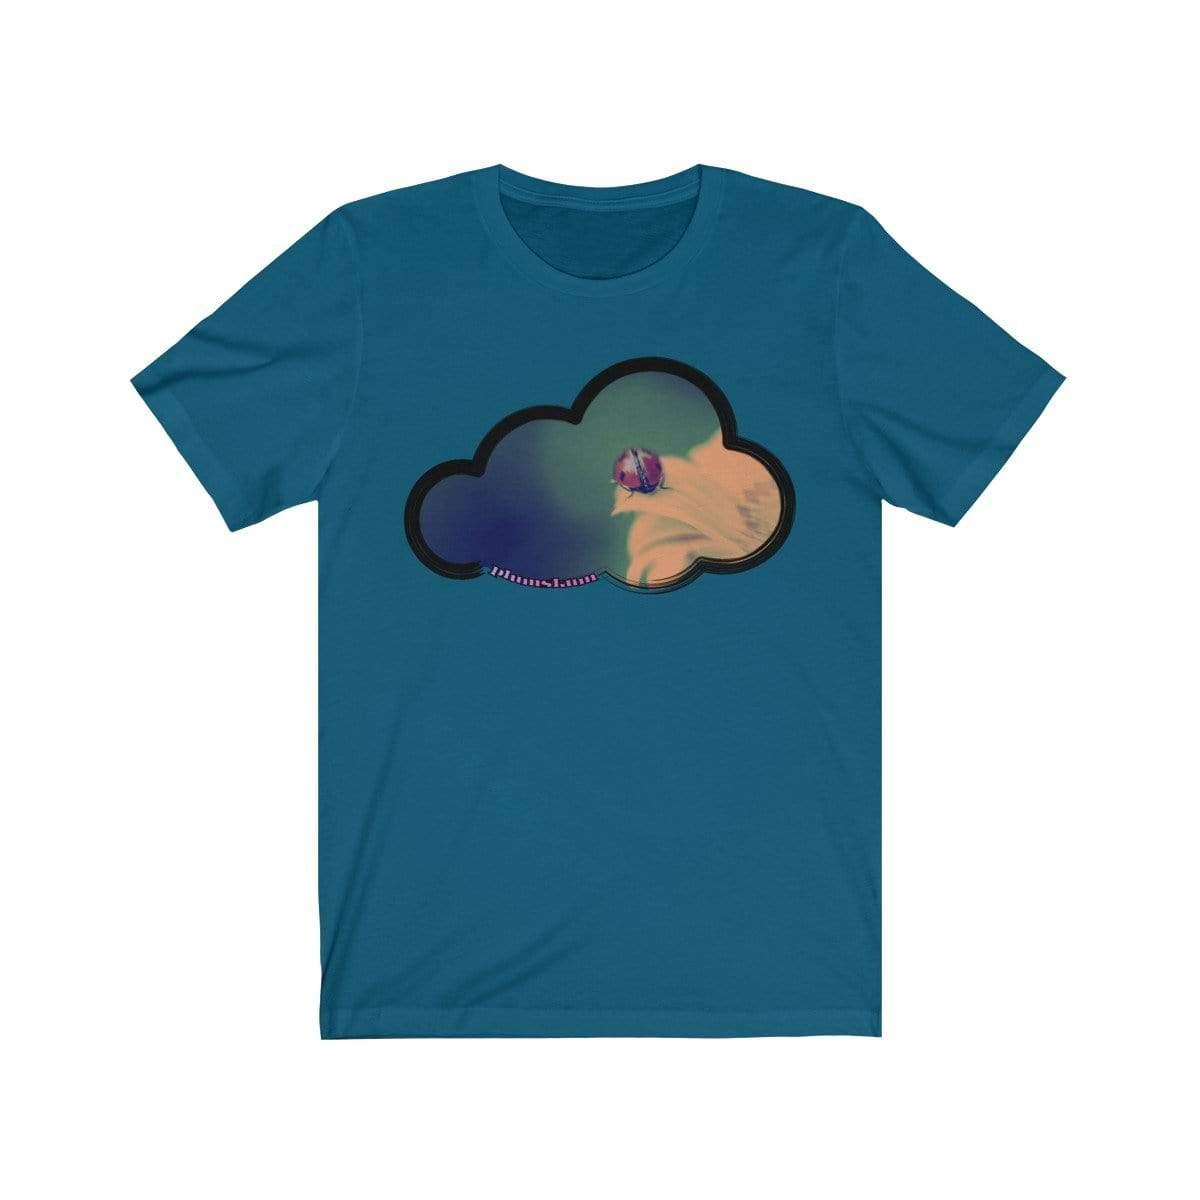 Printify T-Shirt Deep Teal / M Ladybug Art Clouds Tee